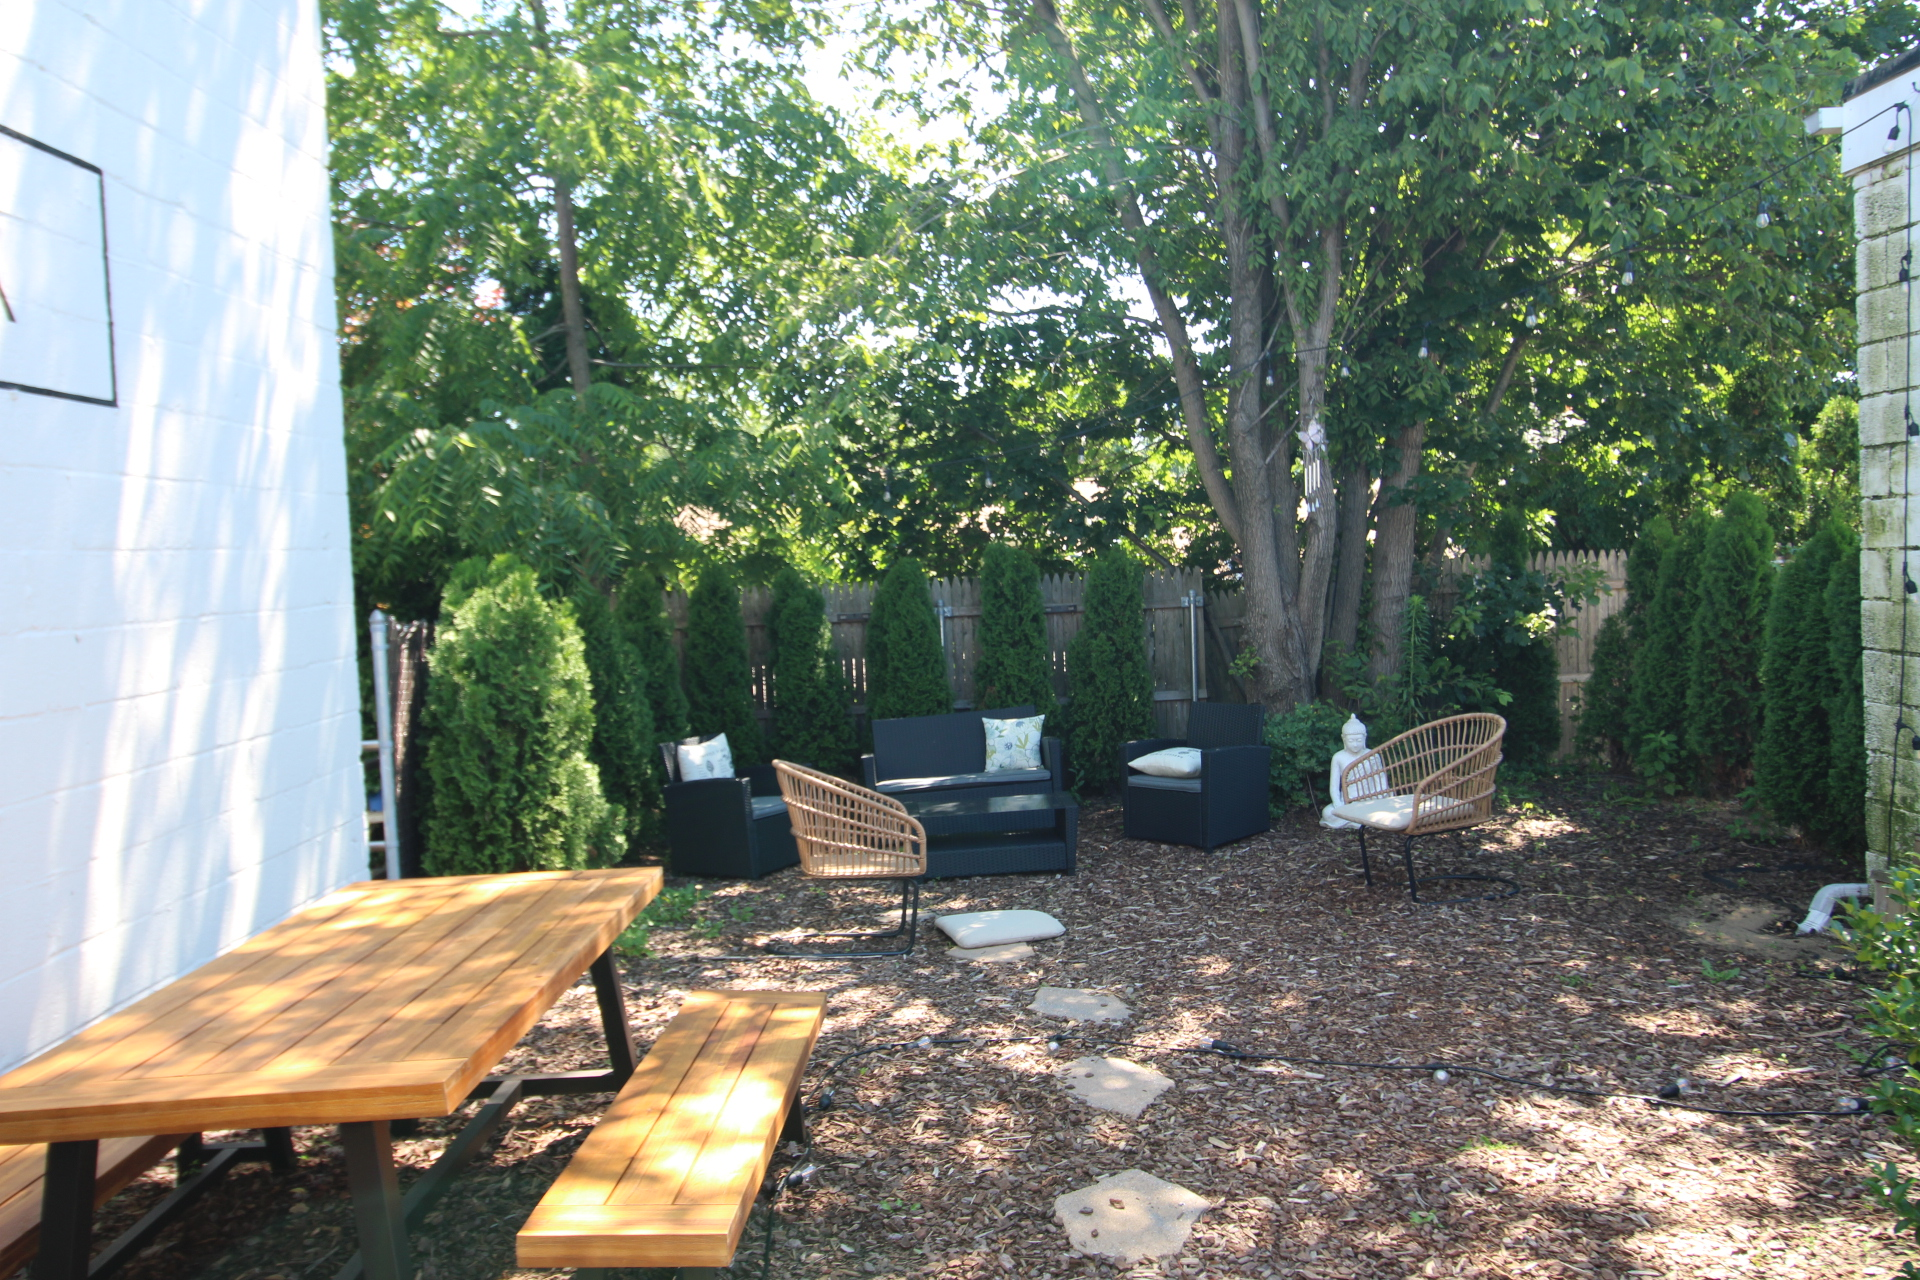 Enjoy in our relaxing backyard space.